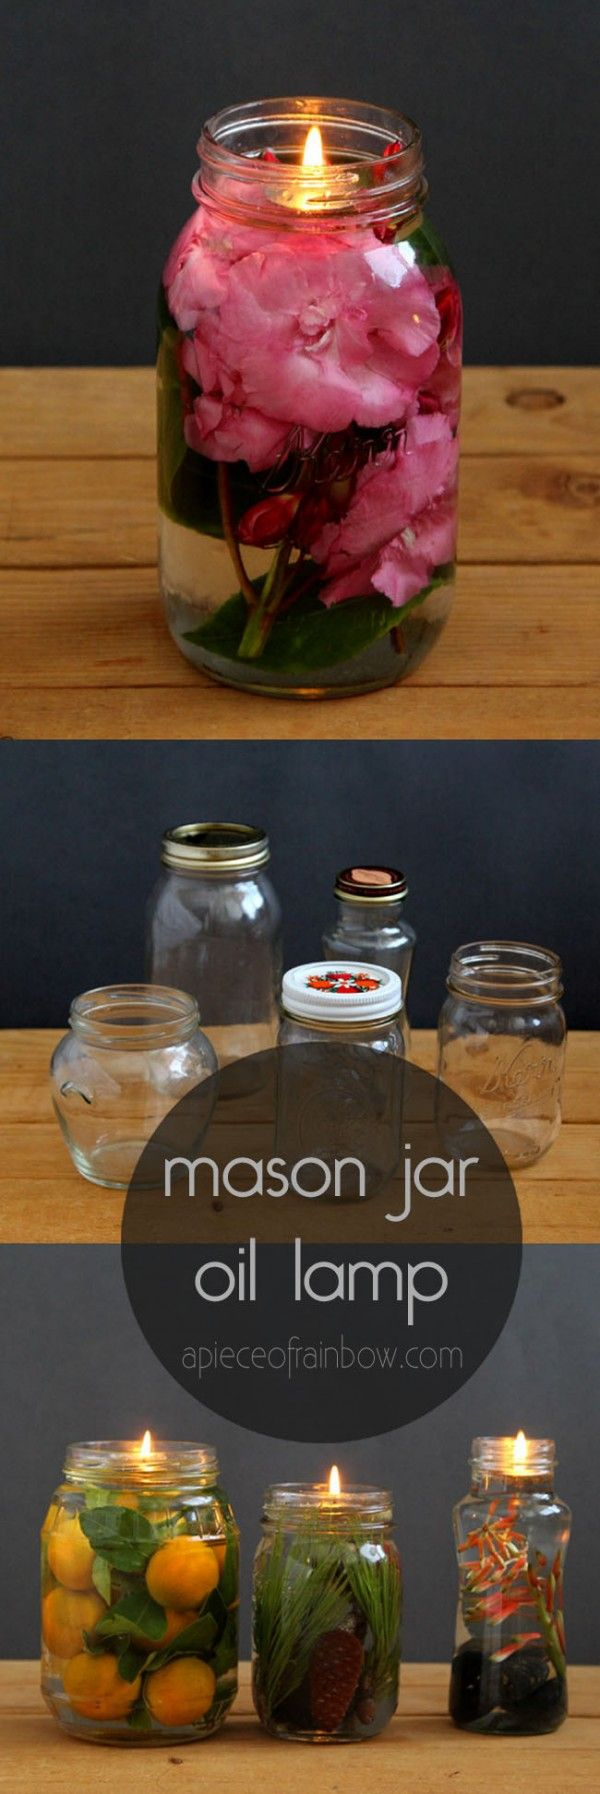 Magical Mason Jar Oil Lamp ( DIY Oil Candles in 2 minutes! ) is part of Mason jar diy - Make gorgeous oil lamp and long lasting oil candles easily in 2 minutes using vegetable oil and water perfect DIY lighting and beautiful table decorations! Lots of creative variations and tips on choosing oil and wicks